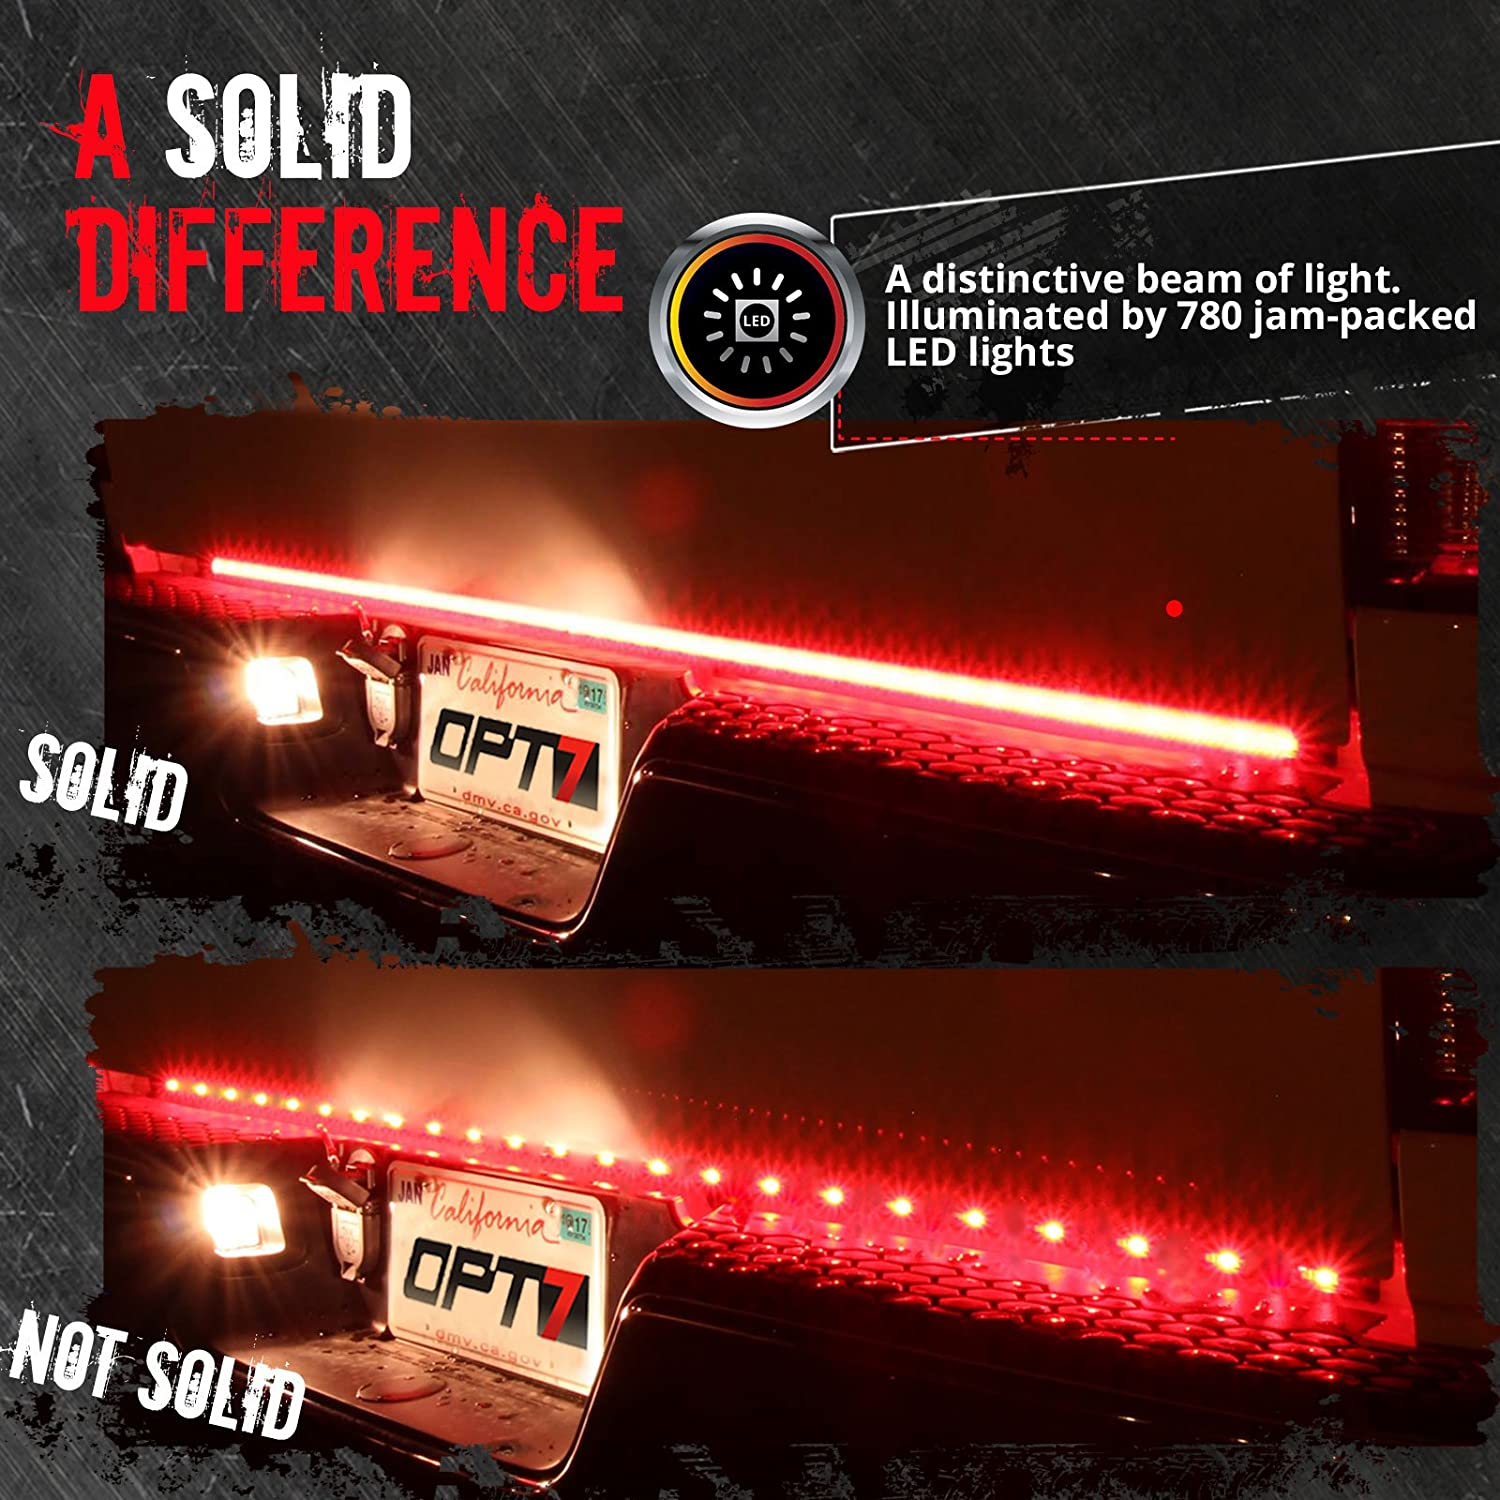 Opt7 48 Redline Triple Led Tailgate Light Bar W Star Wiring Diagram Sequential Amber Turn Signal 788 Solid Beam Weatherproof No Drill Install Full